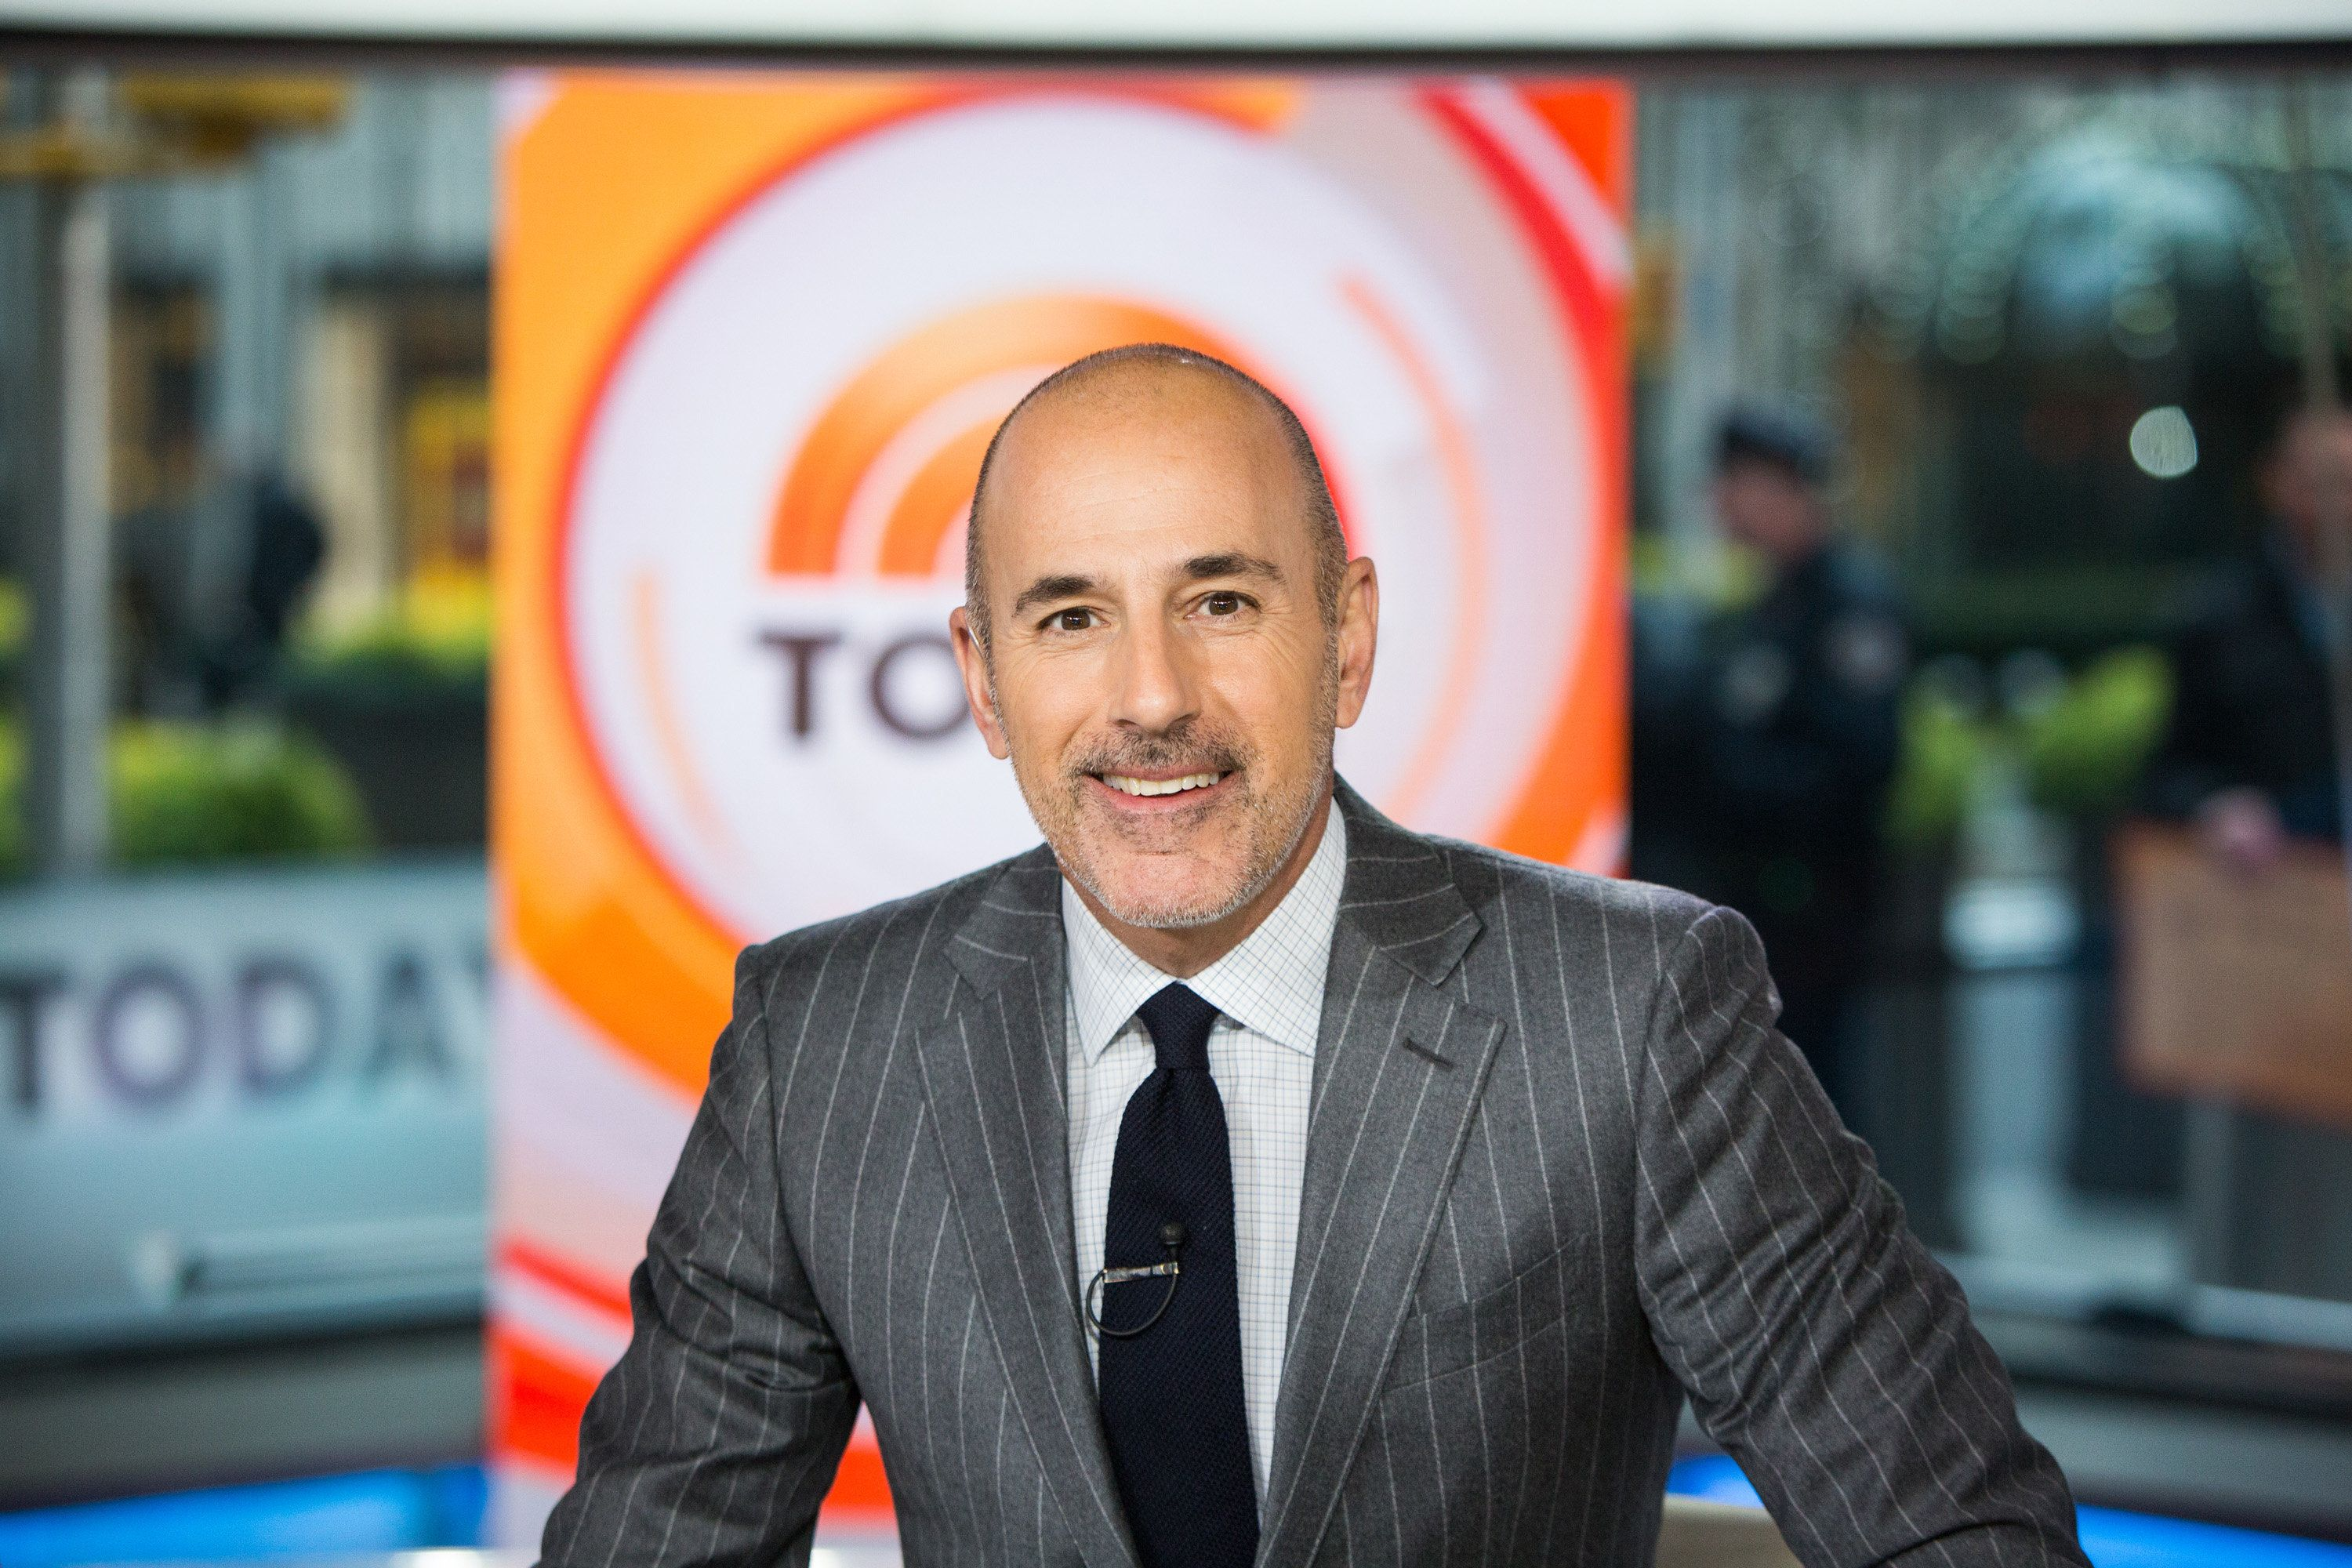 TODAY -- Pictured: Matt Lauer on Wednesday, November 8, 2017 -- (Photo by: Nathan Congleton/NBC/NBCU Photo Bank via Getty Images)